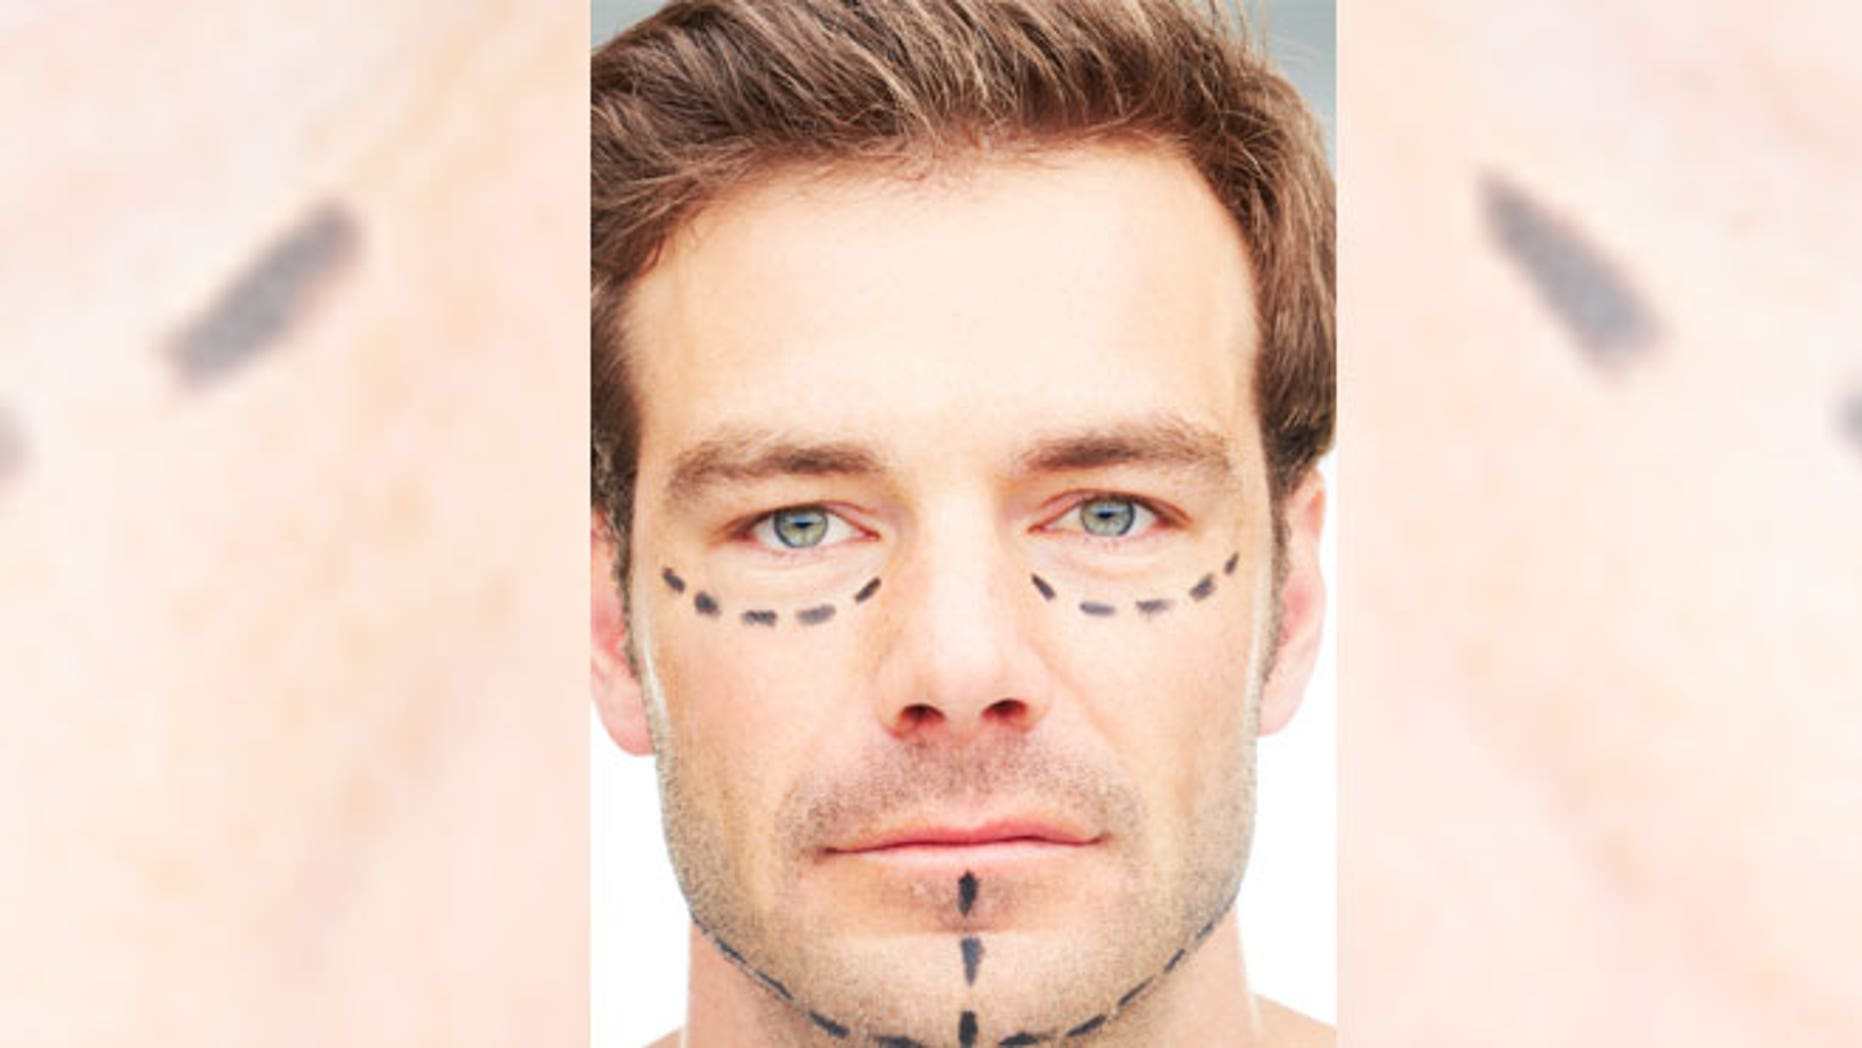 Building The Perfect Face New Trends In Cosmetic Surgery For Men